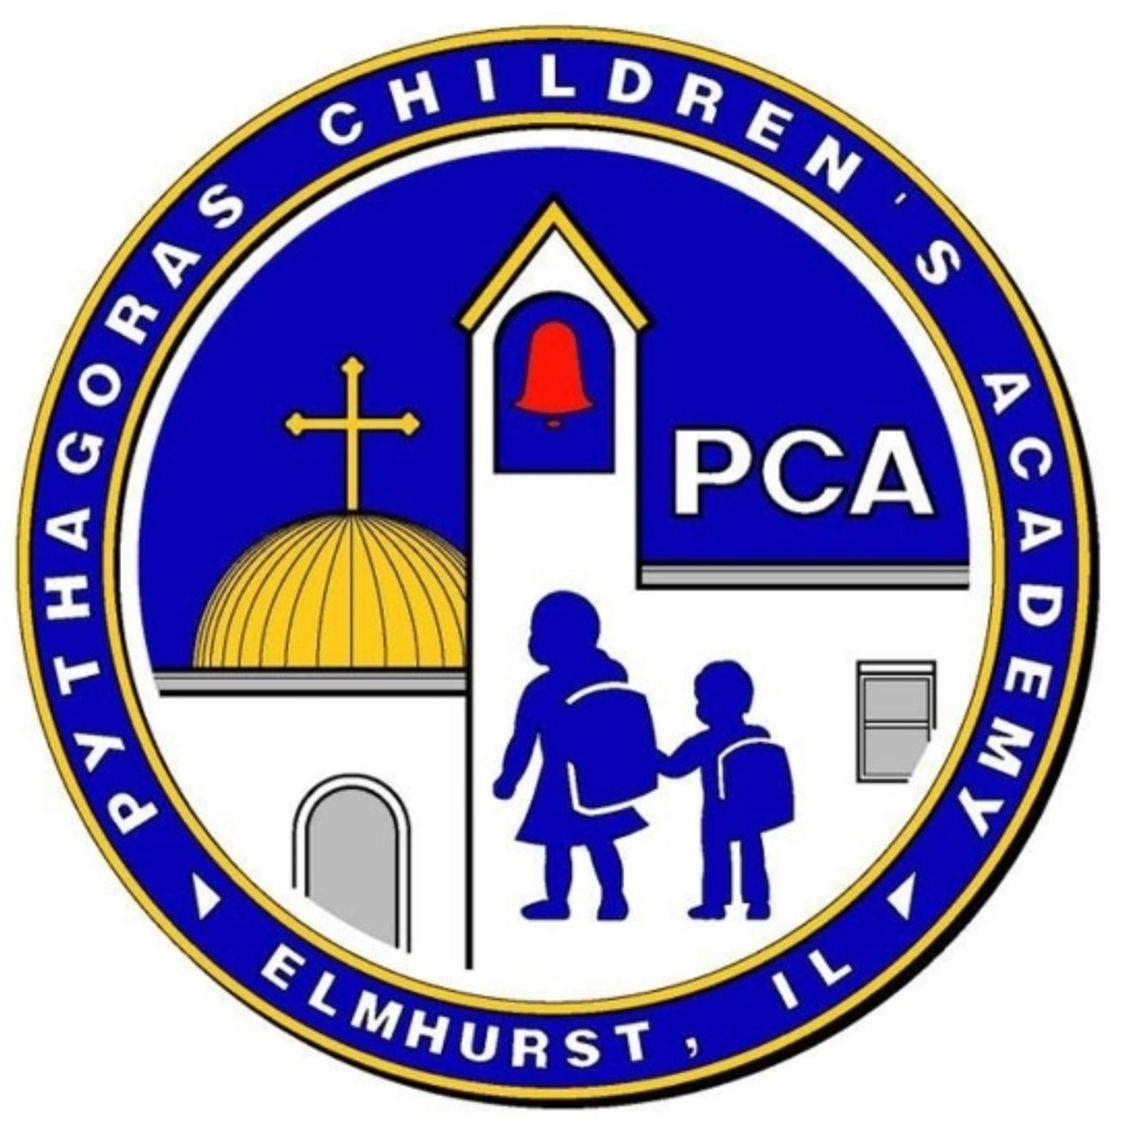 Pythagoras Children's Academy Photo